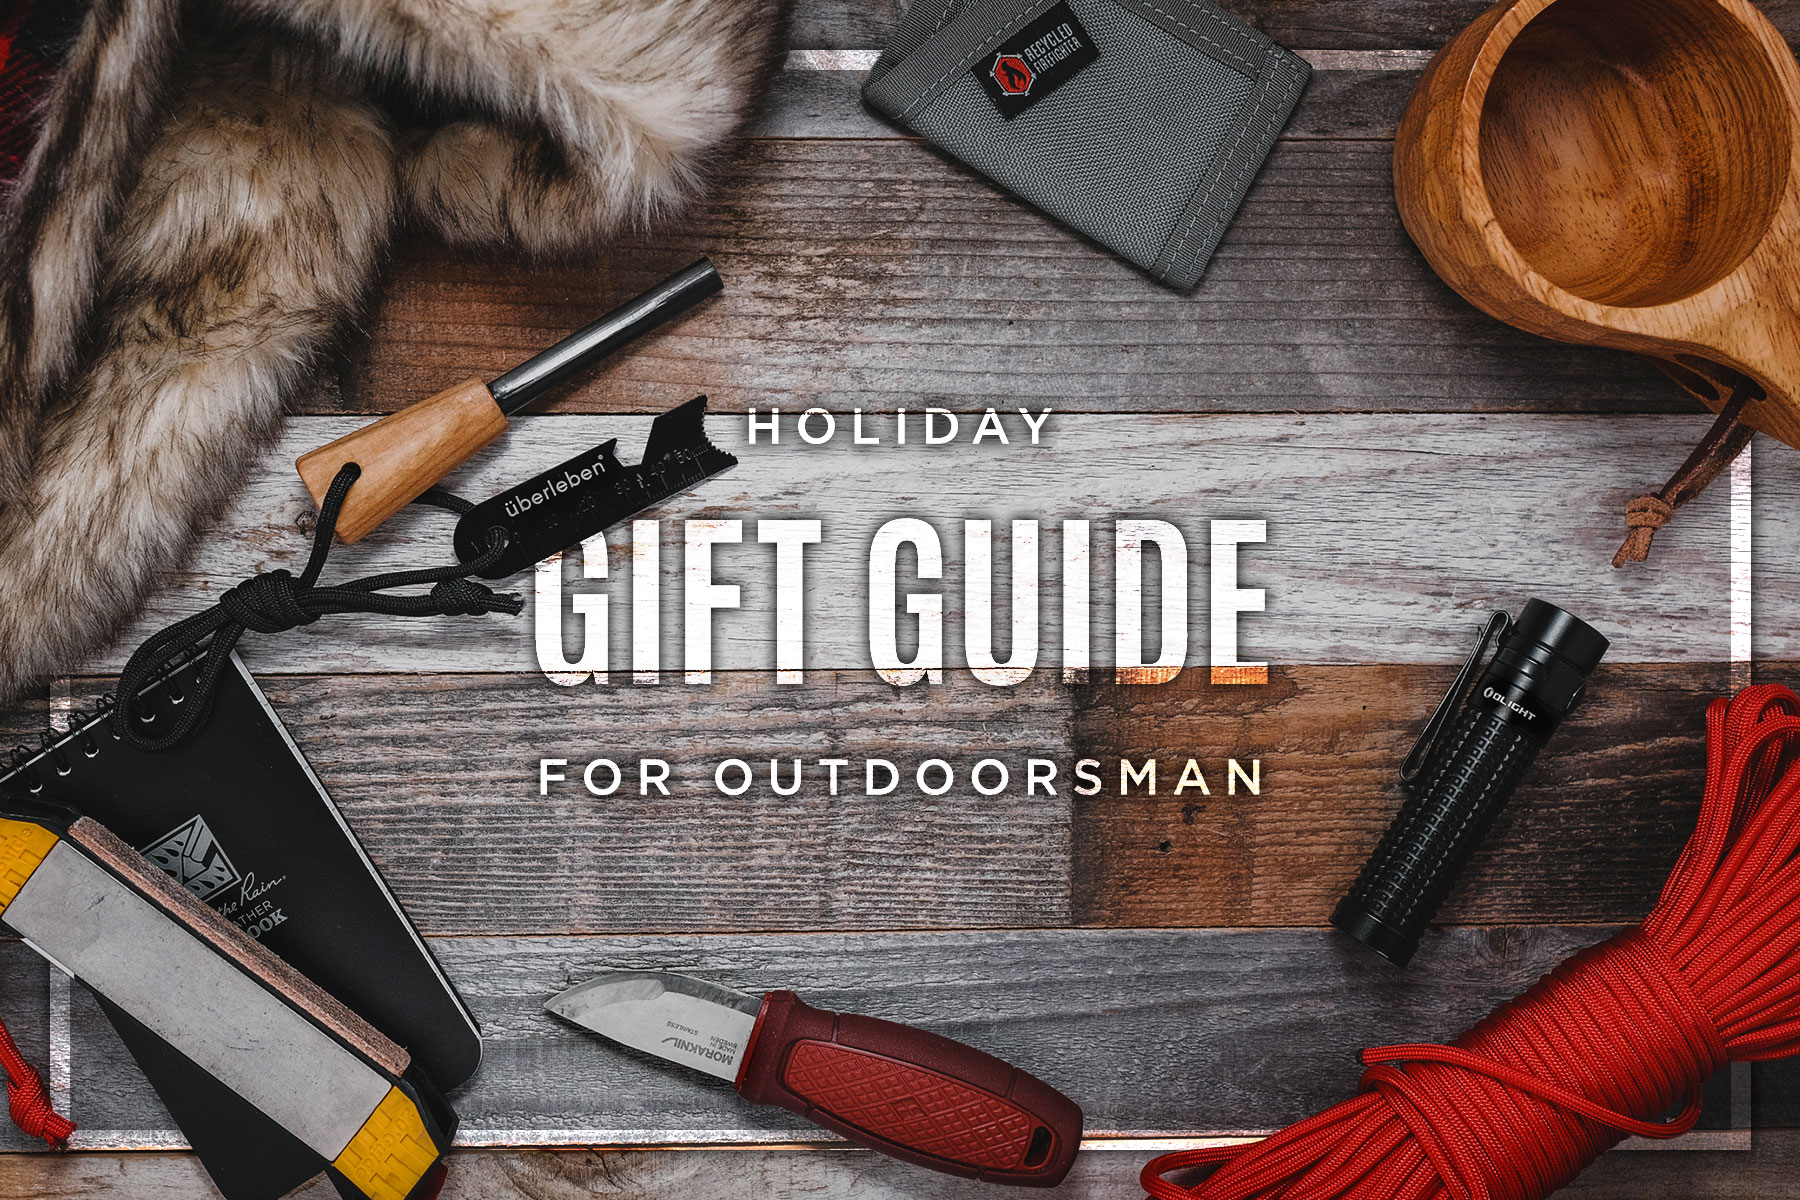 Best Gifts for Outdoorsman 2018 • Knives, Camping Gear ...